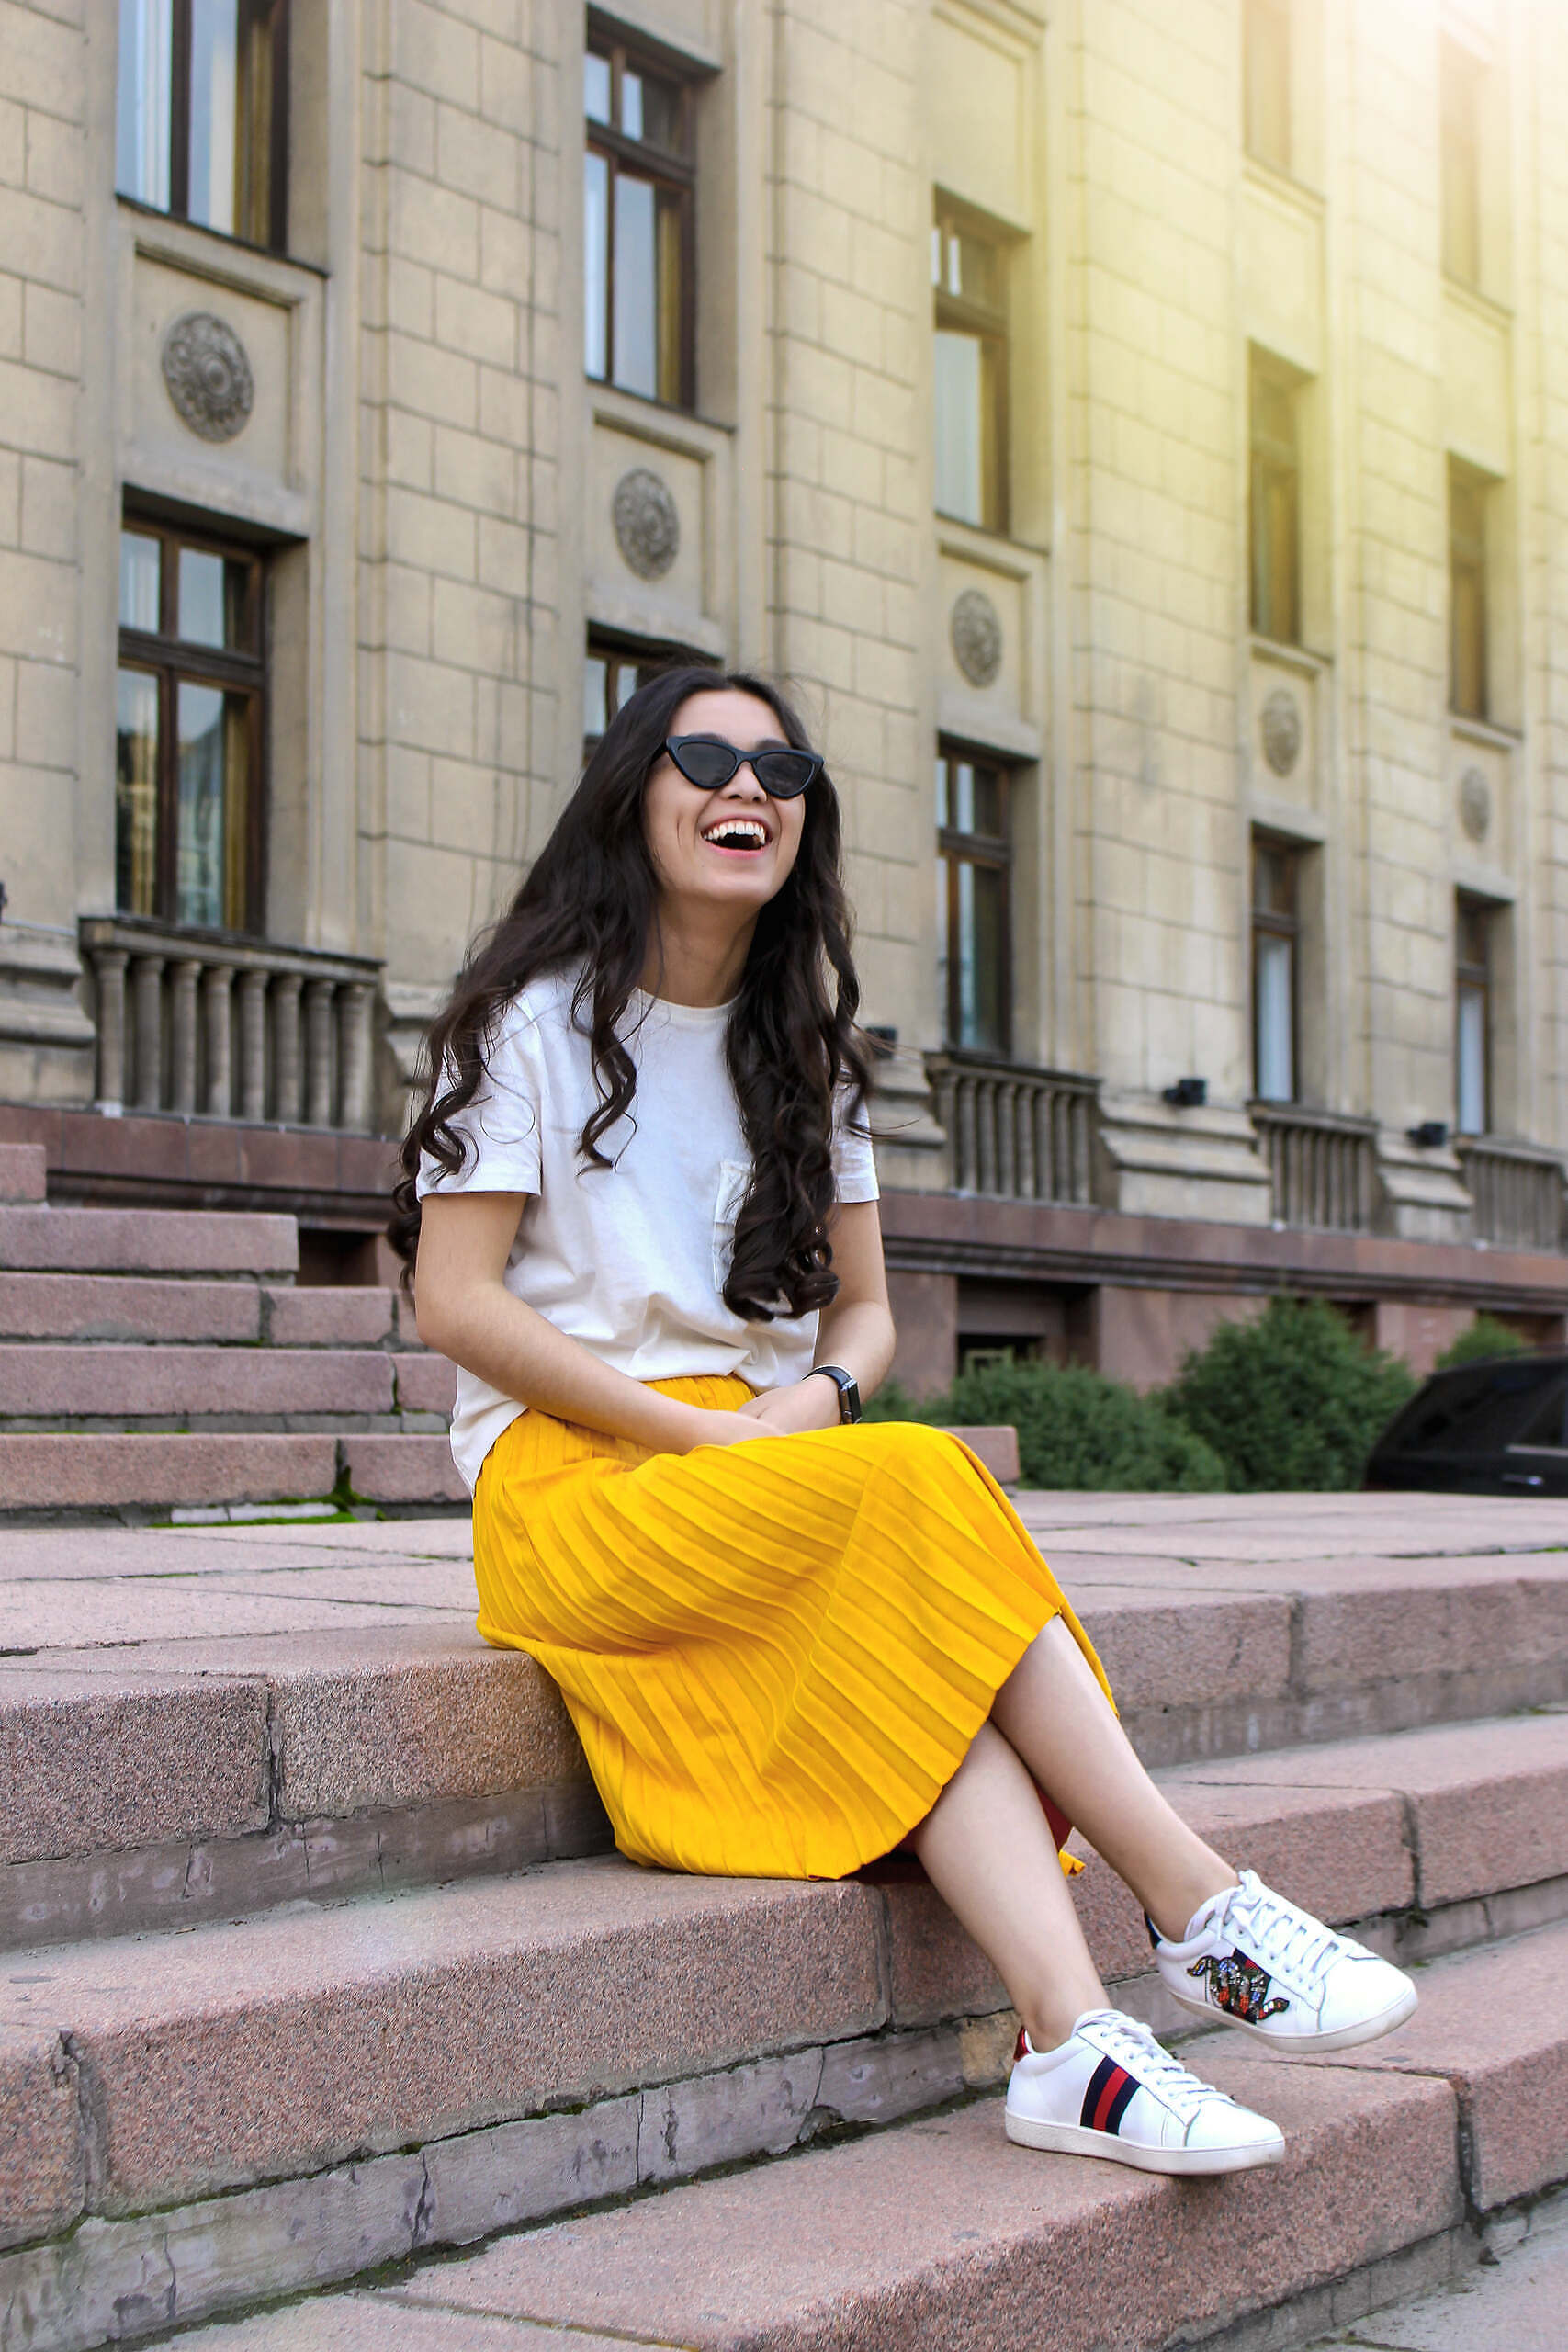 woman-wearing-white-shirt-and-yellow-skirt-sitting-on-brown-983564